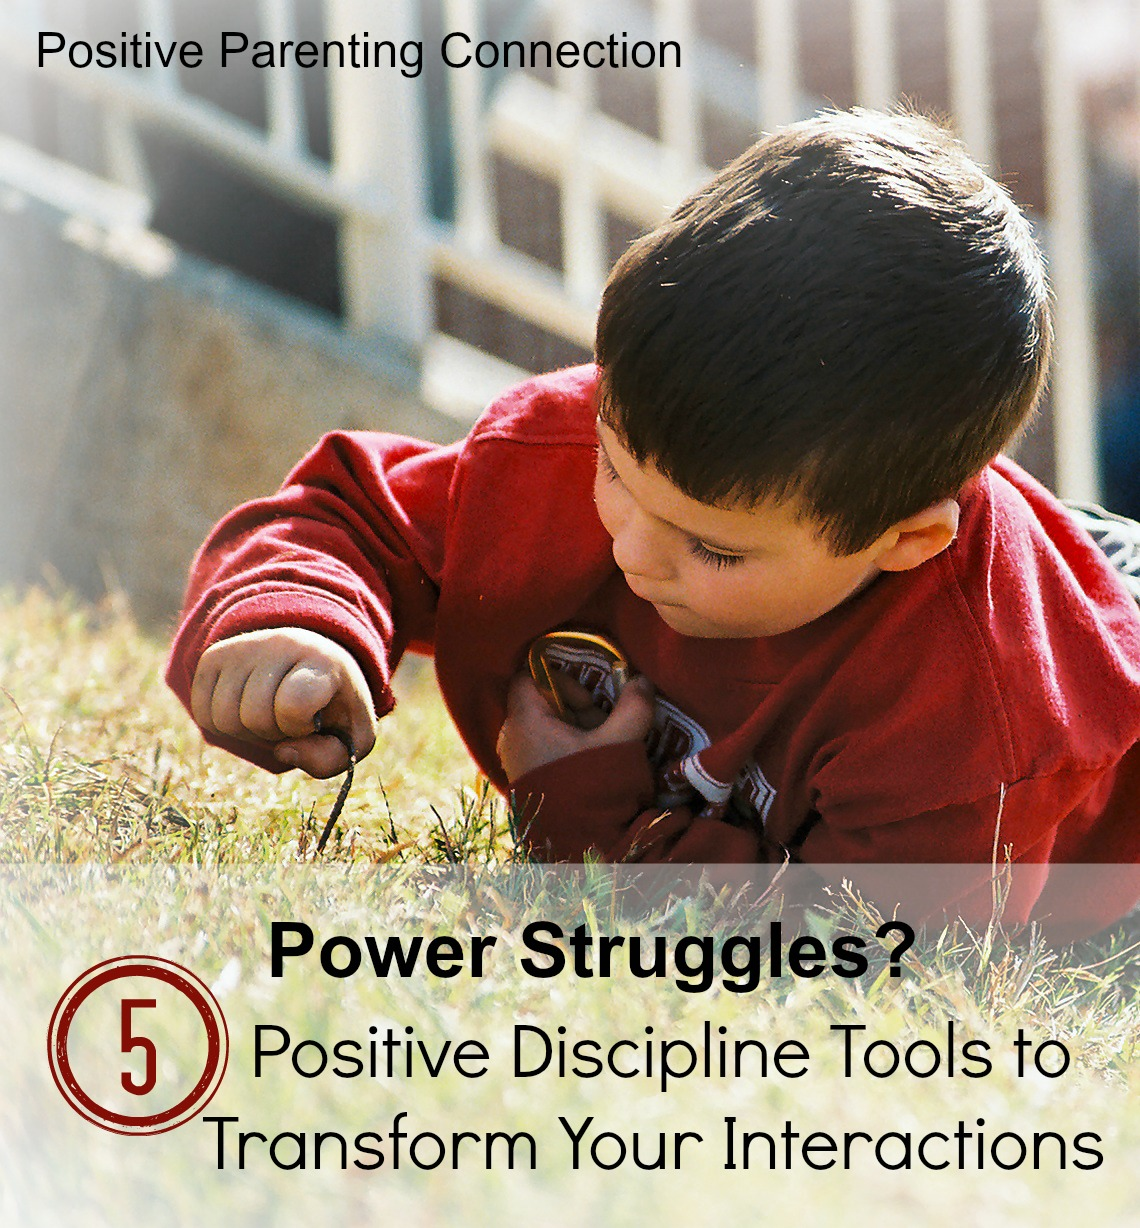 Power Struggles? 5 Positive DisciplineTools to Transform Your Interactions